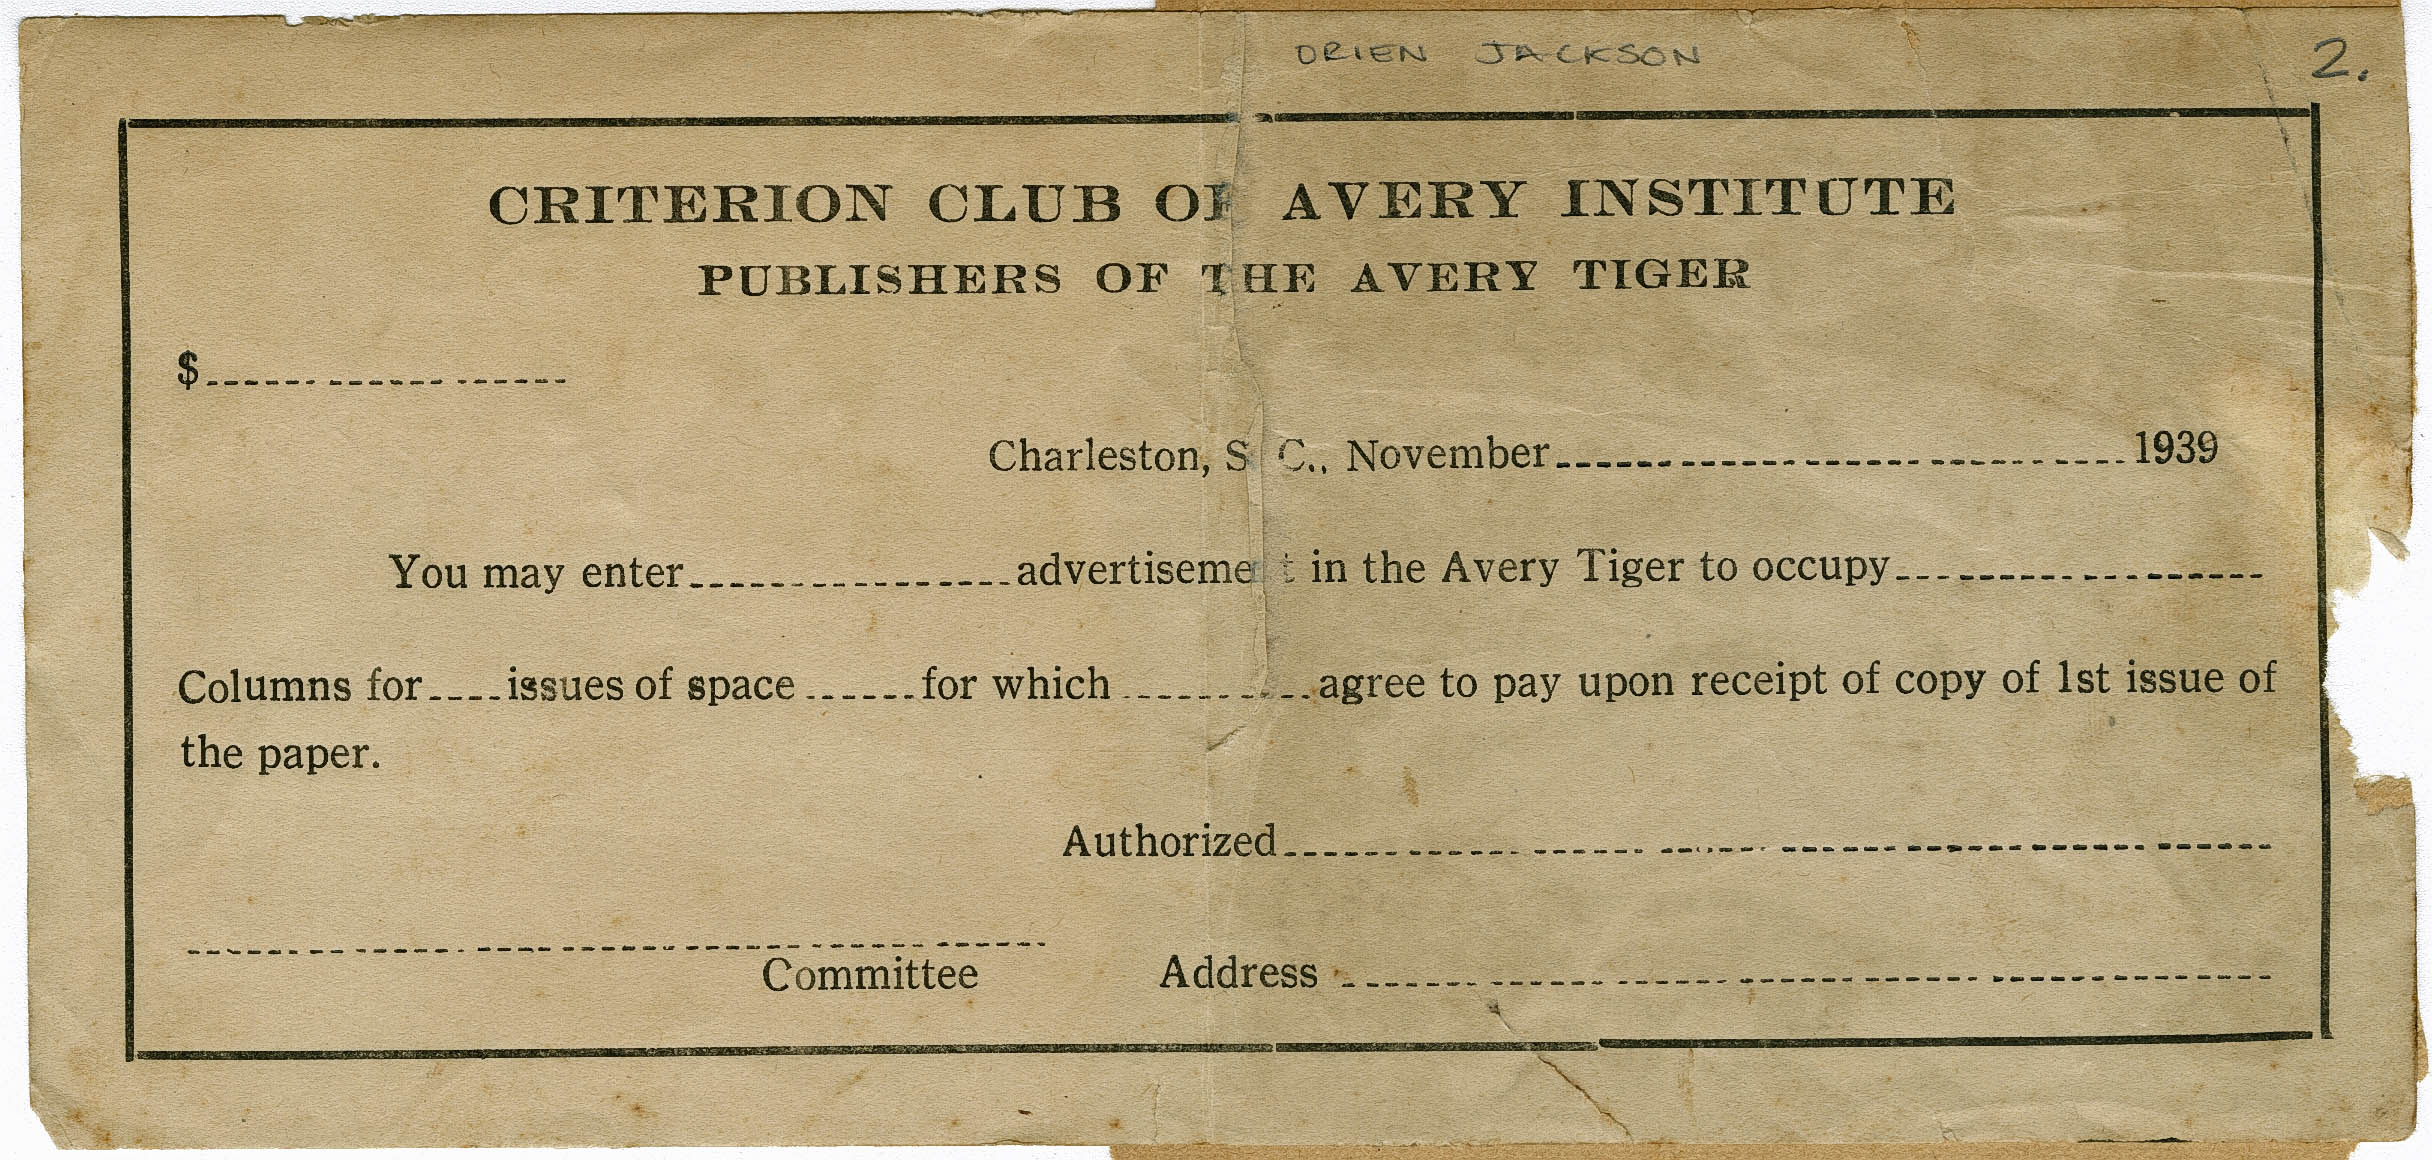 Order form for advertisement space in the